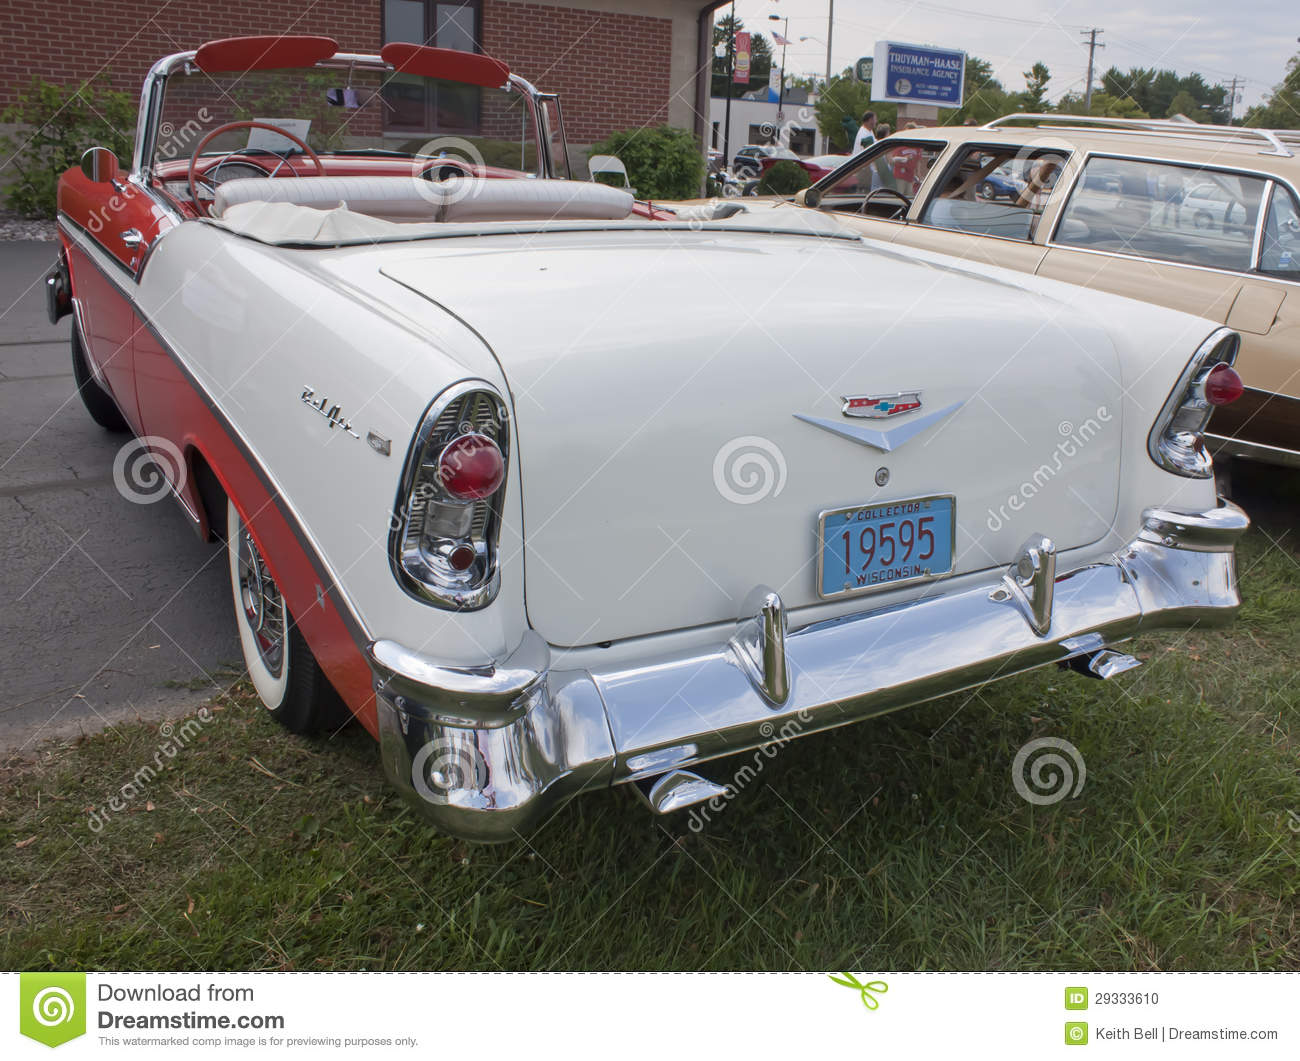 Convertible 1956 chevy bel air convertible : 1956 Chevy Bel Air Rear View Editorial Image - Image: 29333610